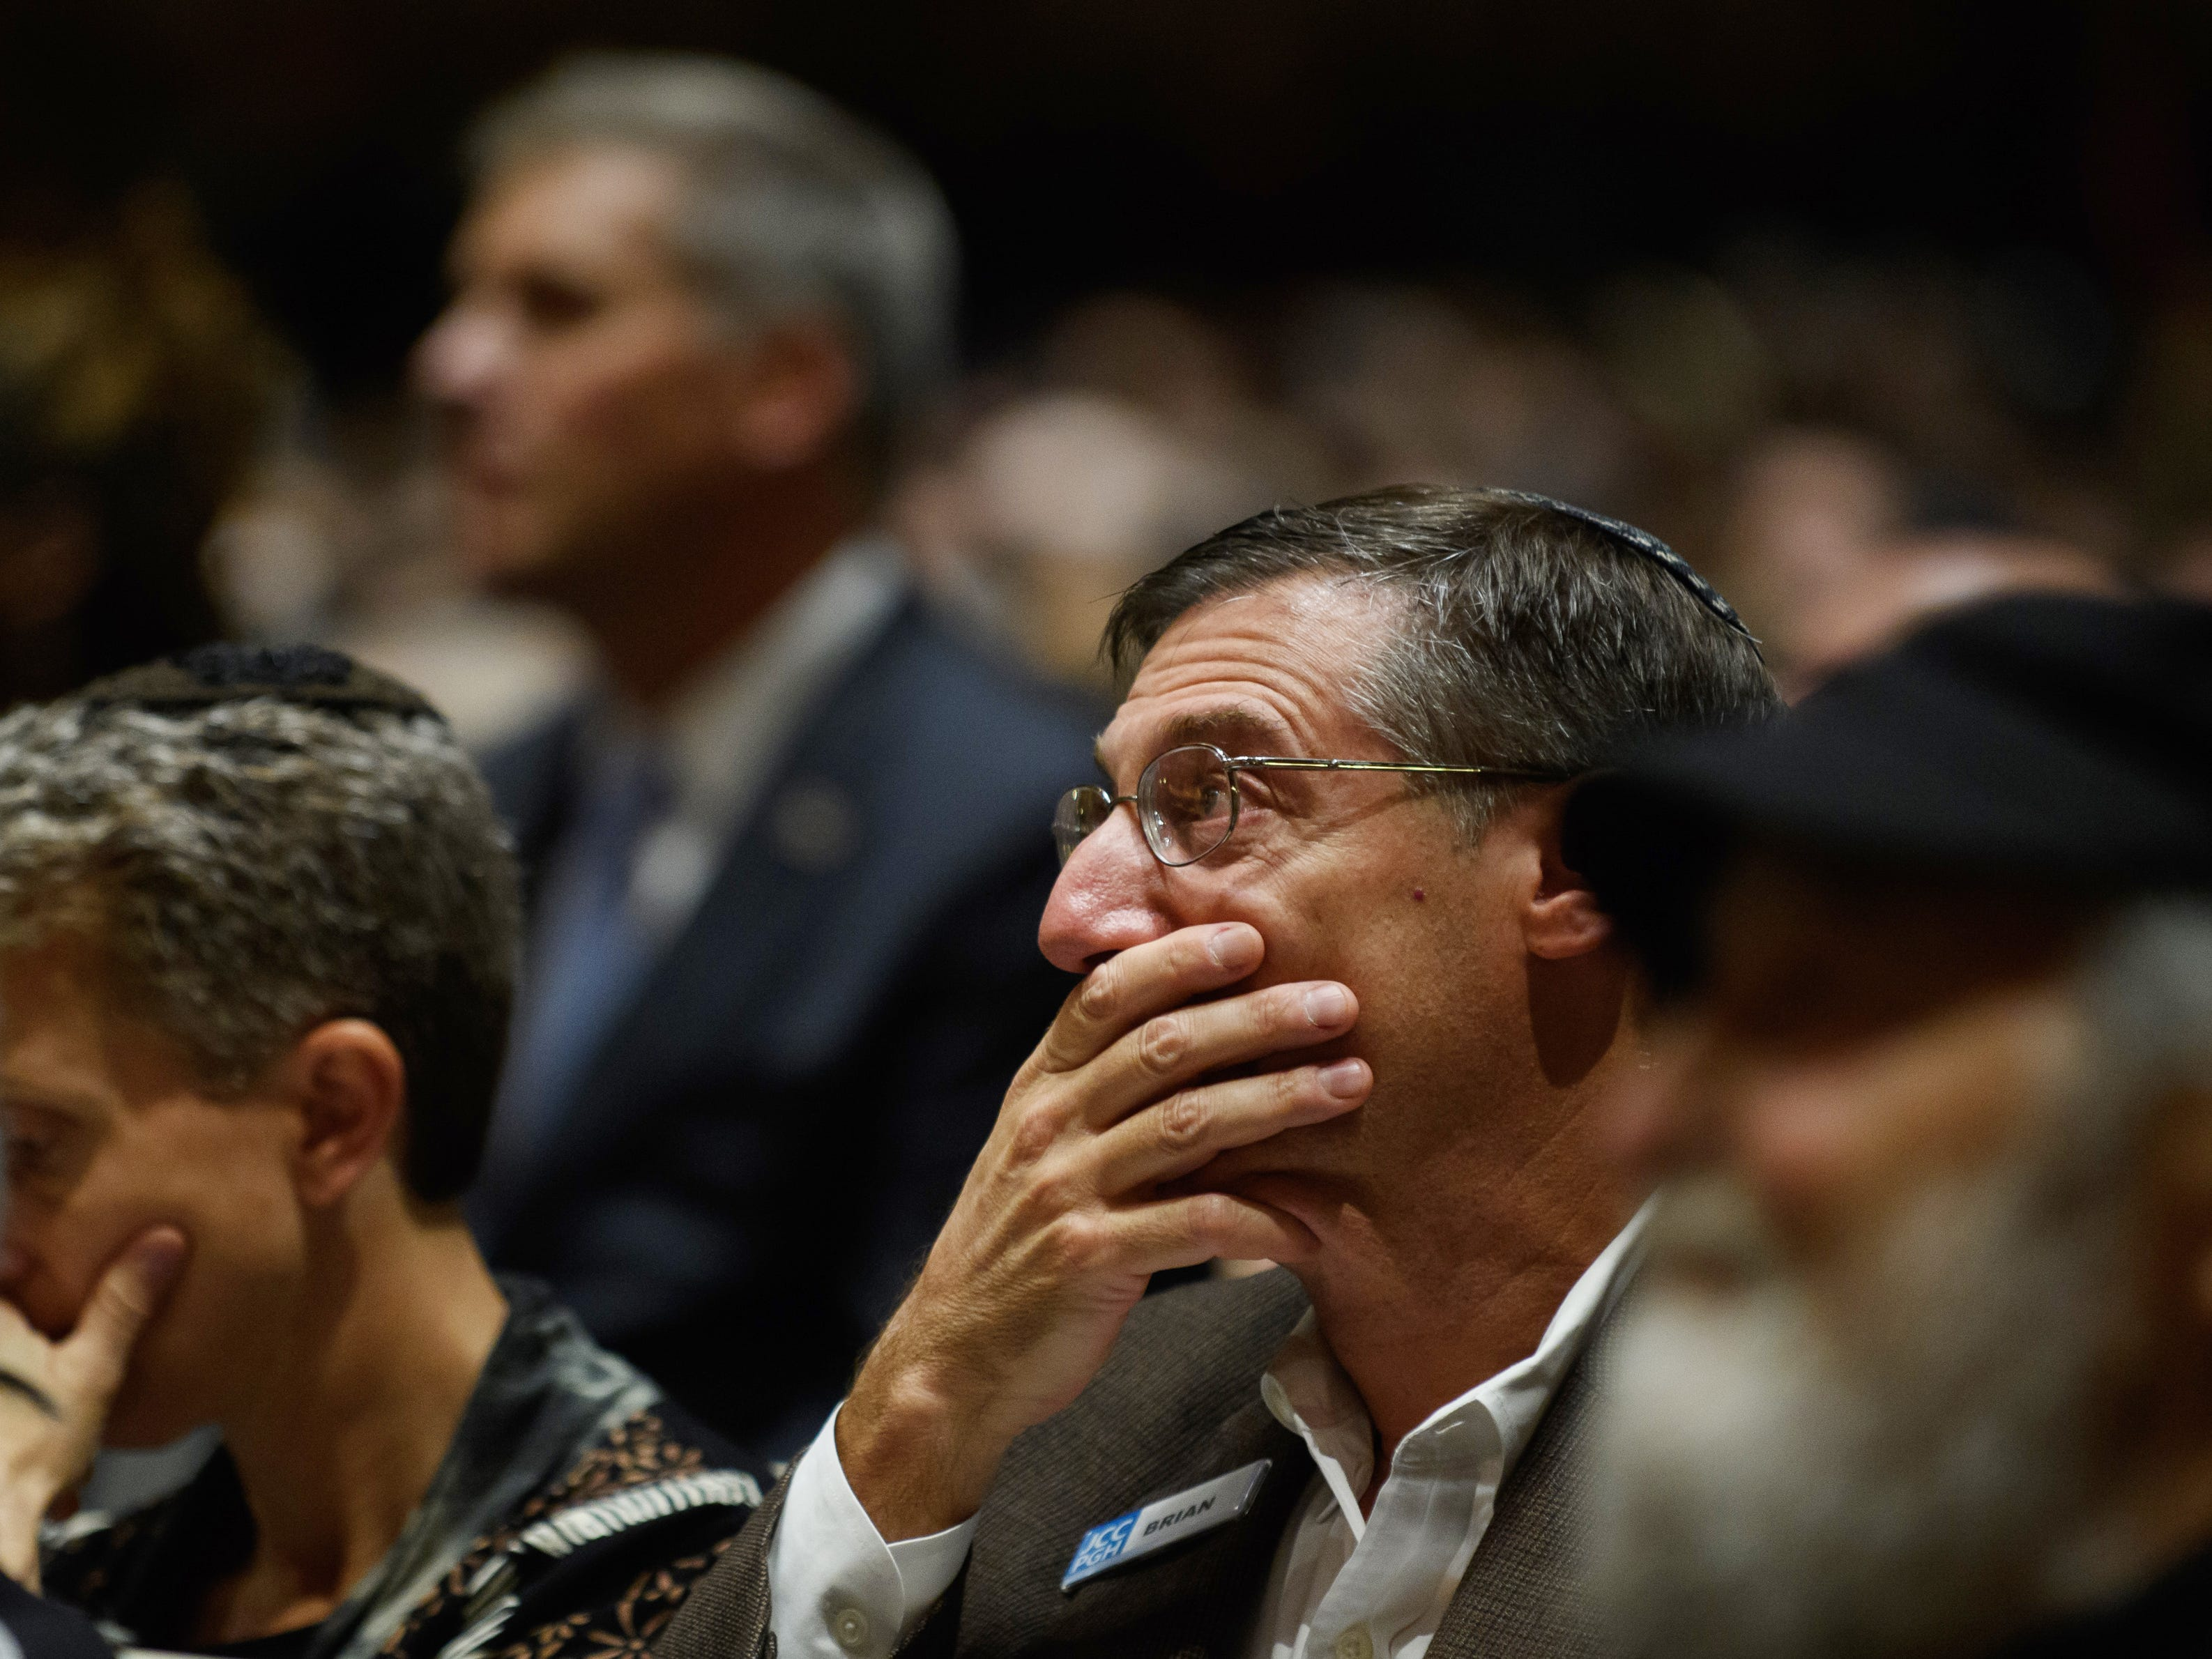 People listen to interfaith speakers on Oct. 28, 2018, at the Soldiers & Sailors Memorial Hall before a service to honor and mourn the victims of the mass shooting at the Tree of Life Congregation synagogue in Pittsburgh.